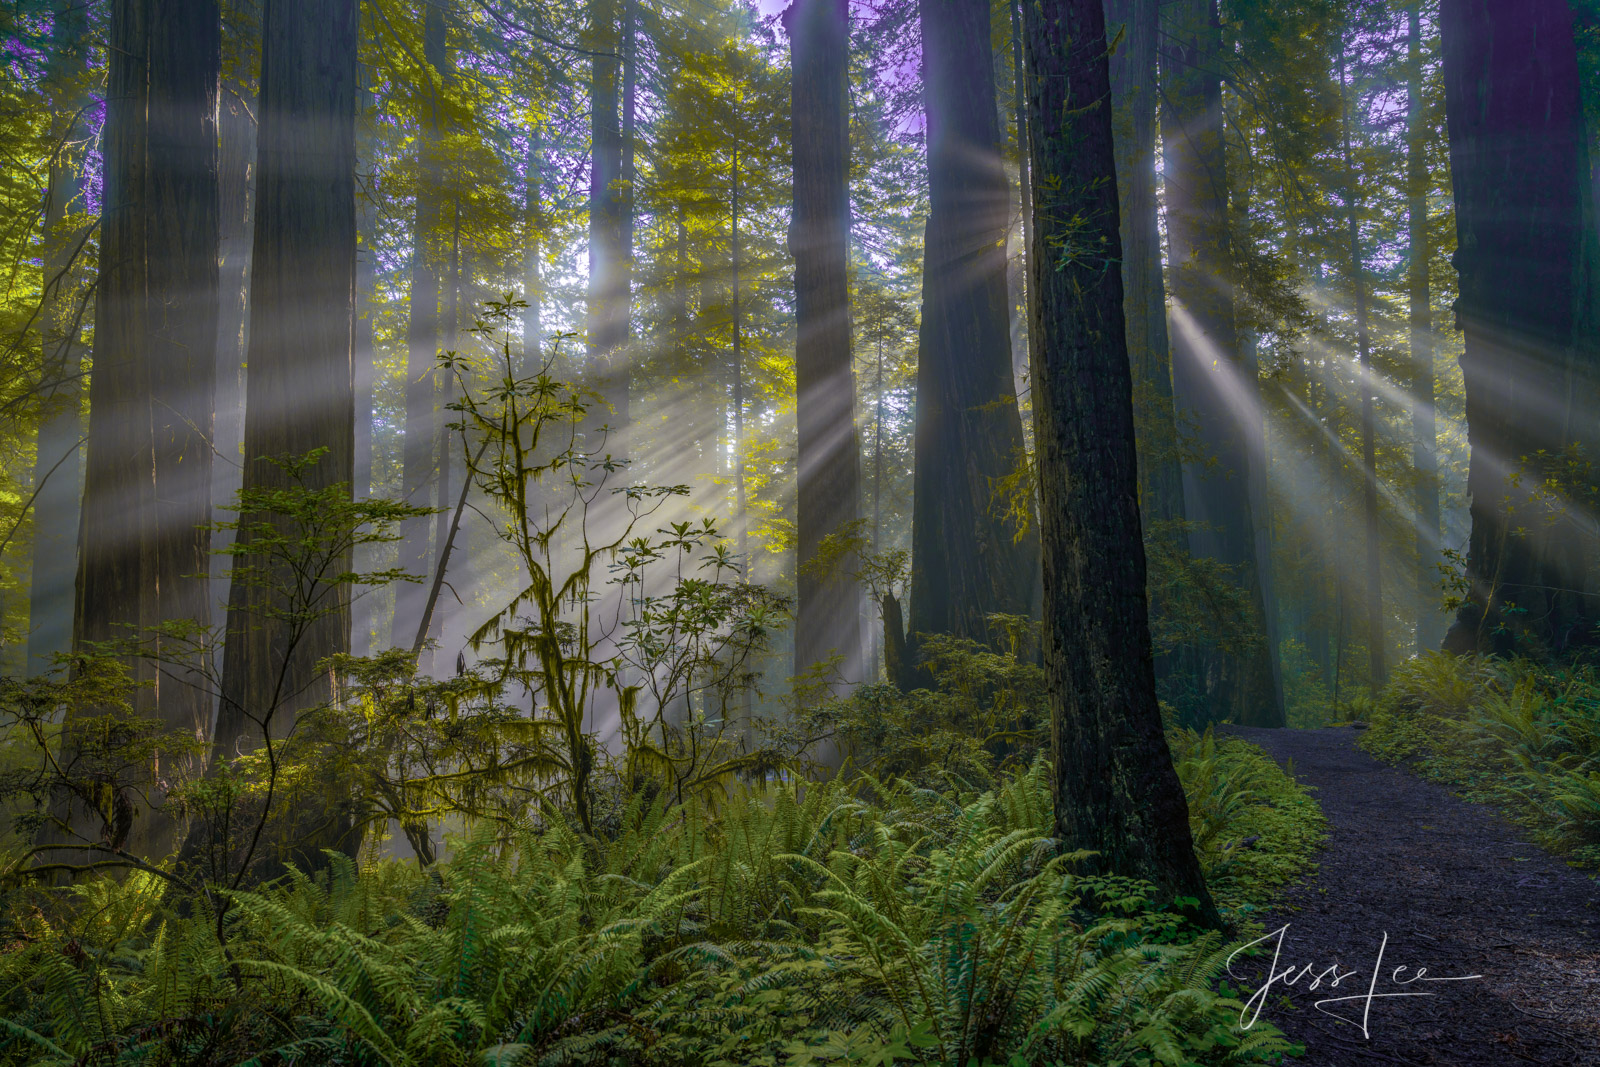 Light beams Rhododendrons and redwoods in the Redwood Forest.